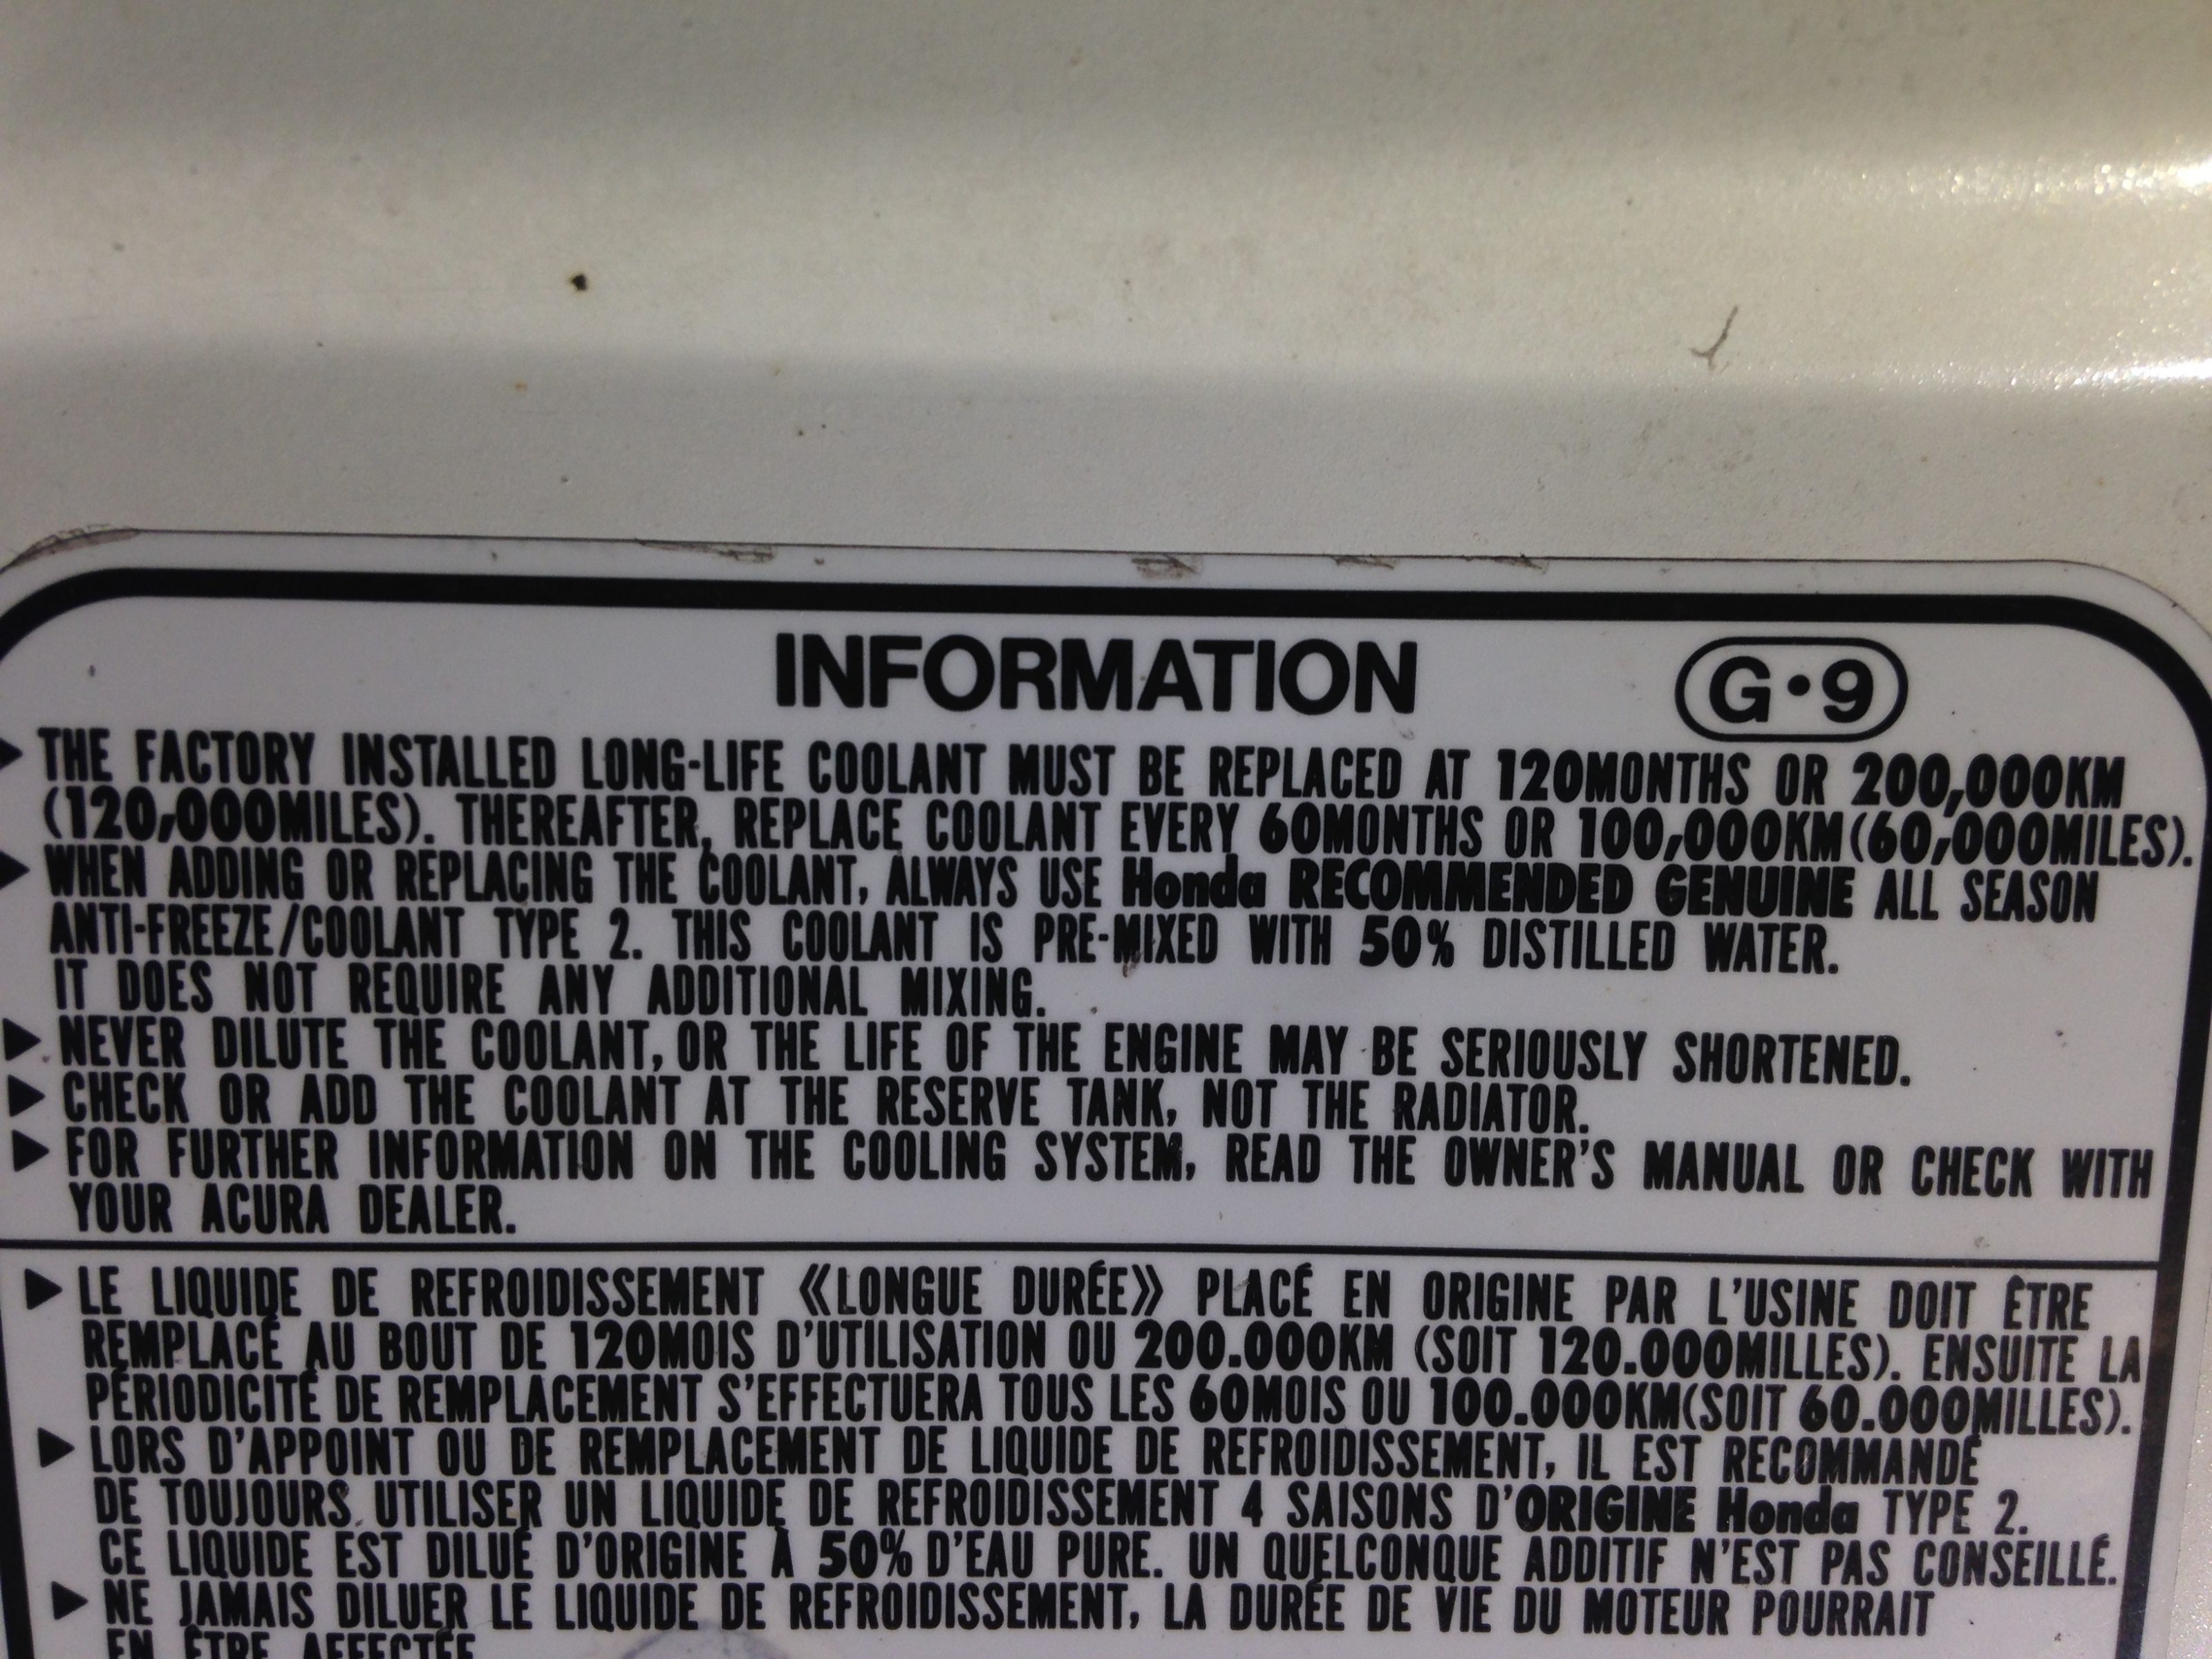 Honda Engine Antifreeze Coolant Has Long Service Life Accurate Damage Under Hood Label